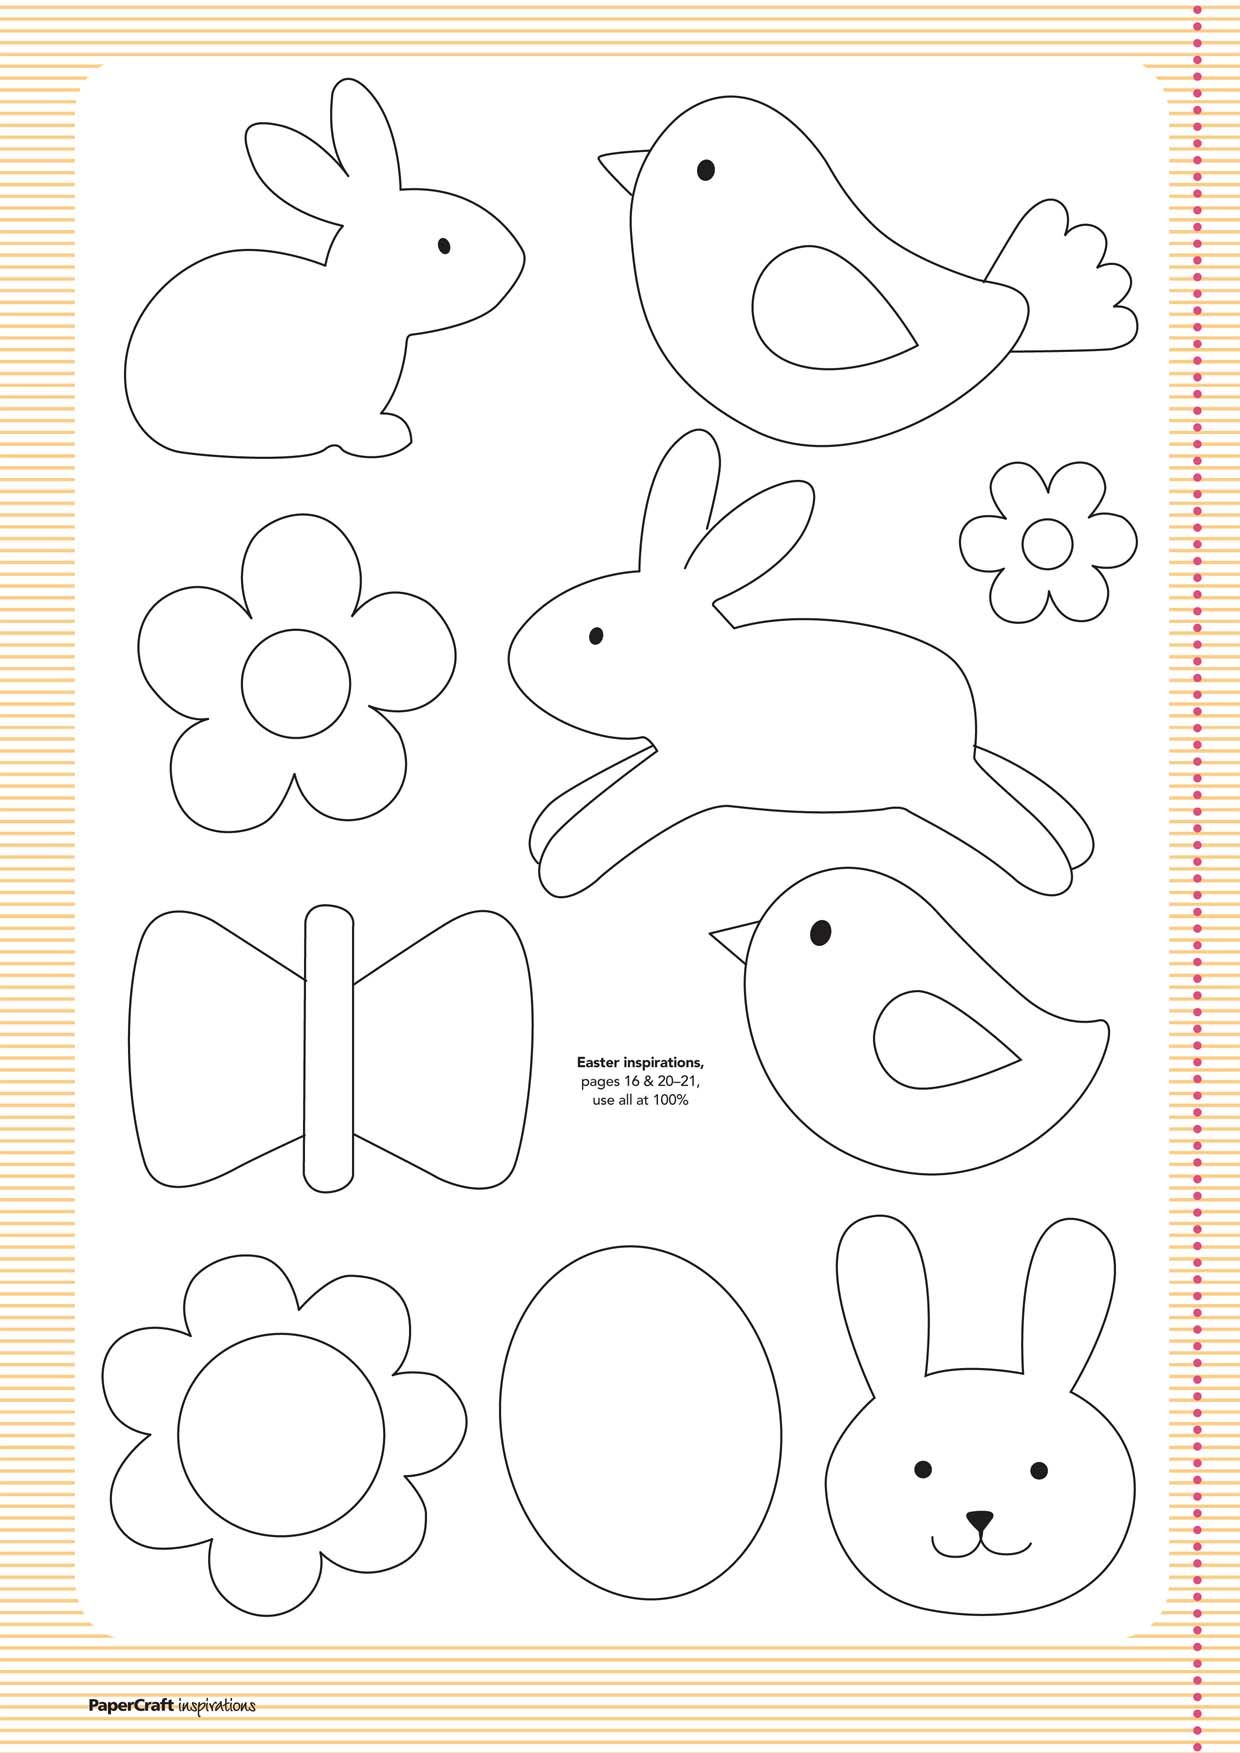 FREE Templates from your April issue... | Papercraft Inspirations ...